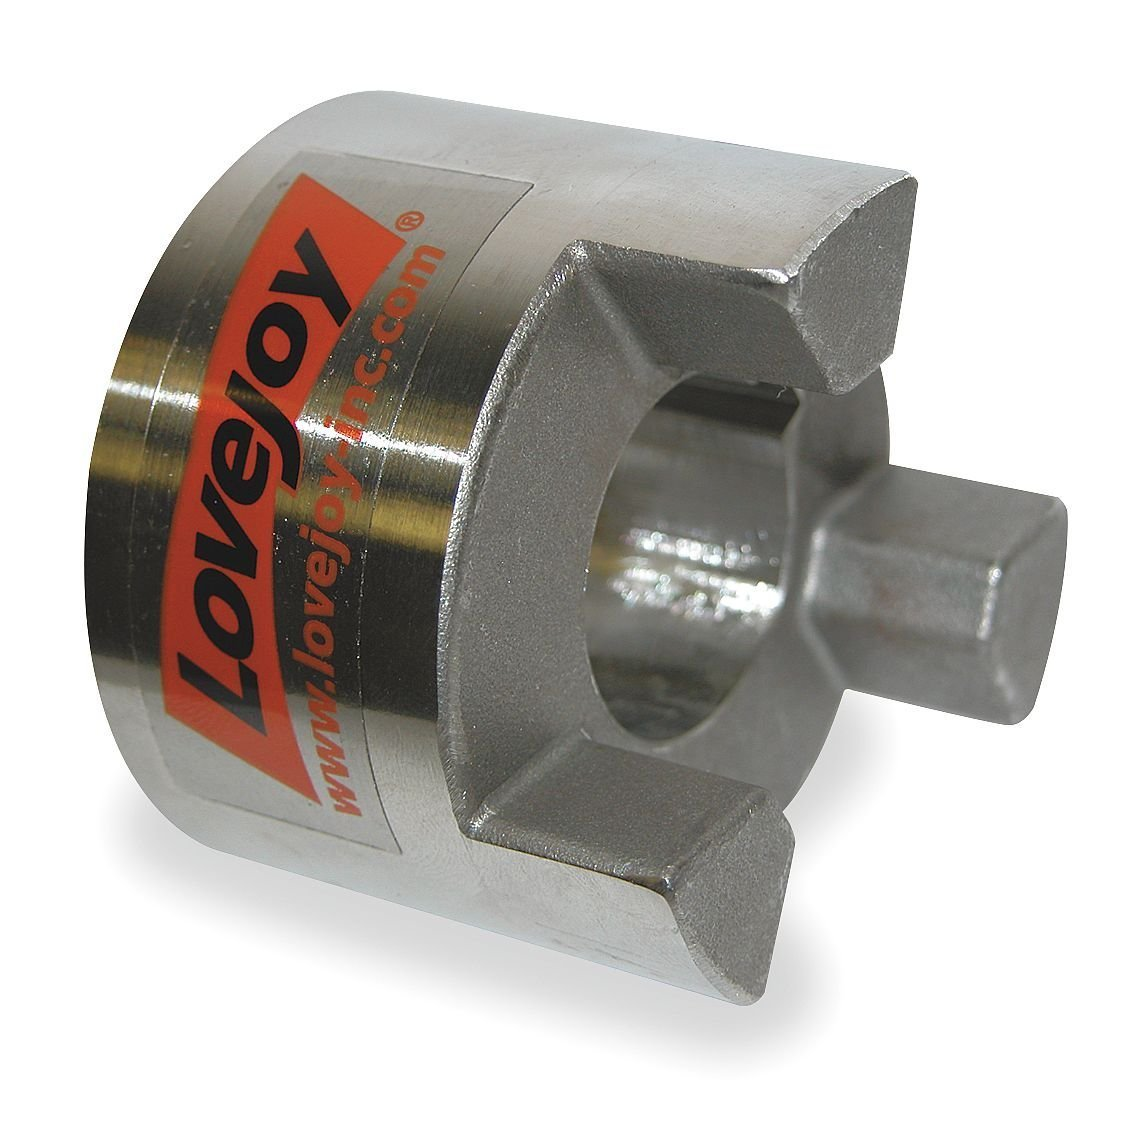 1 x 5//8 Lovejoy Style Complete Hydraulic Jaw Coupler w//Spider Series L095 Coupling